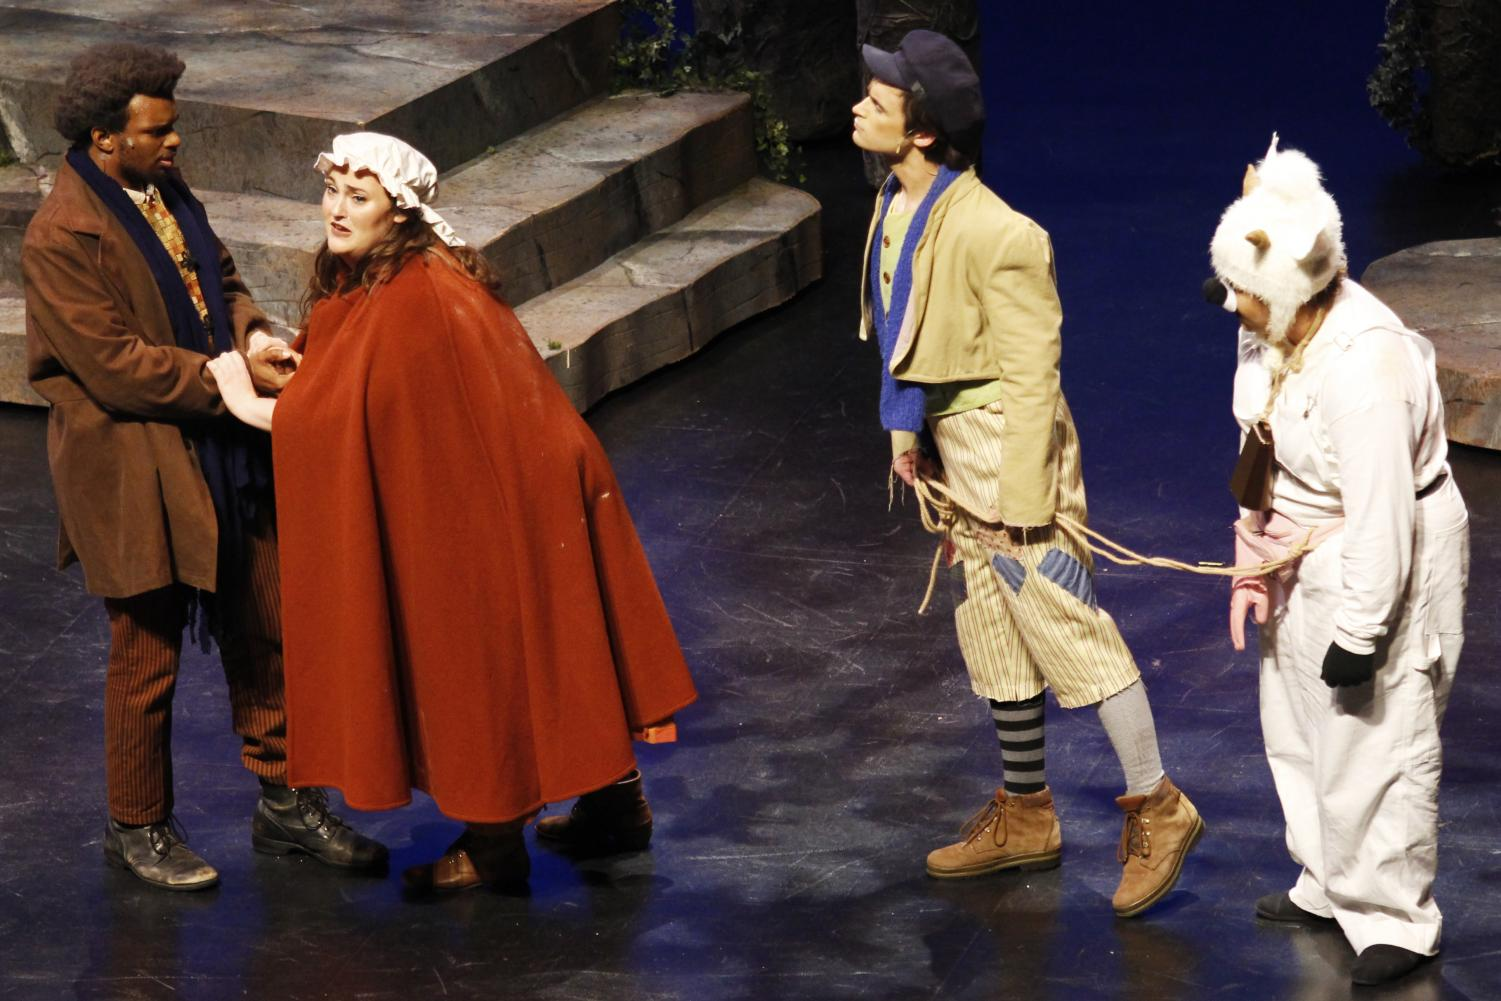 """Into the Woods"" was performed in the Columbia Theatre for the Performing Arts. The act brought together well known characters like Cinderella, Rapunzel and Little Red Riding Hood."